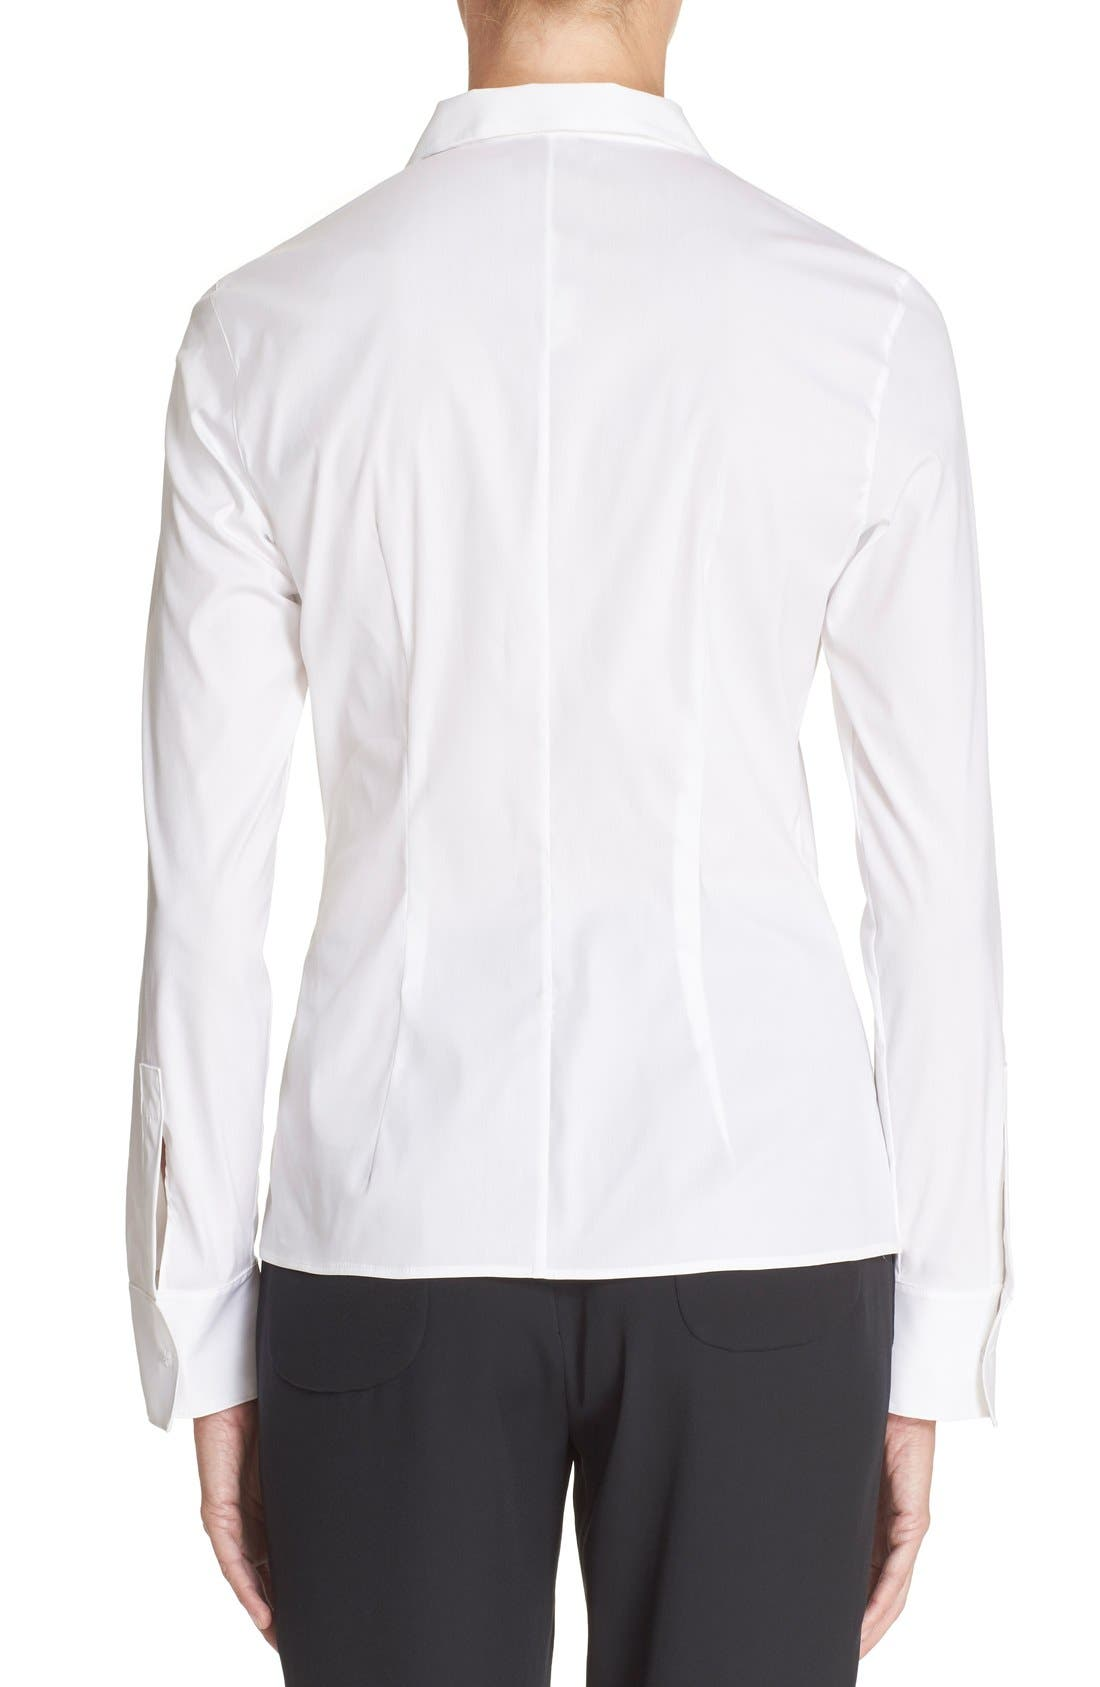 Cotton Poplin Blouse,                             Alternate thumbnail 2, color,                             White